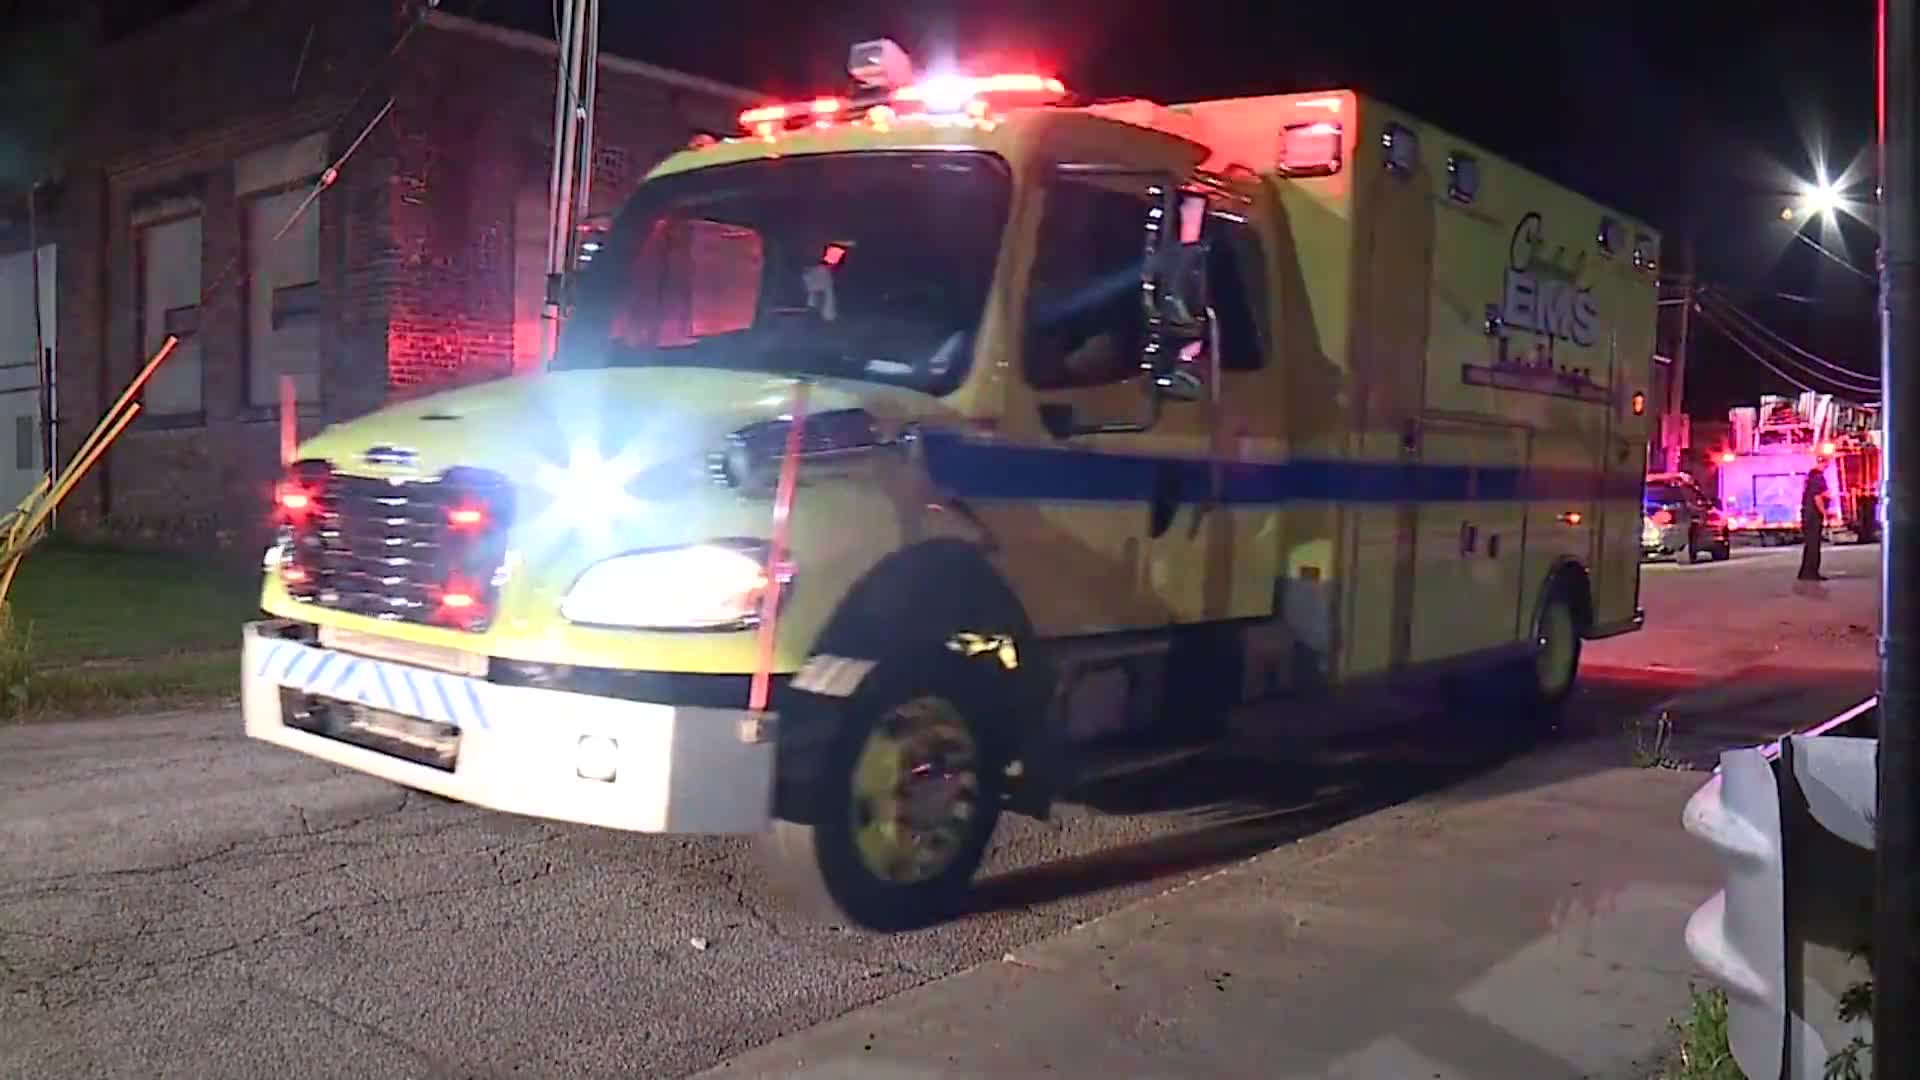 Cleveland EMS response times